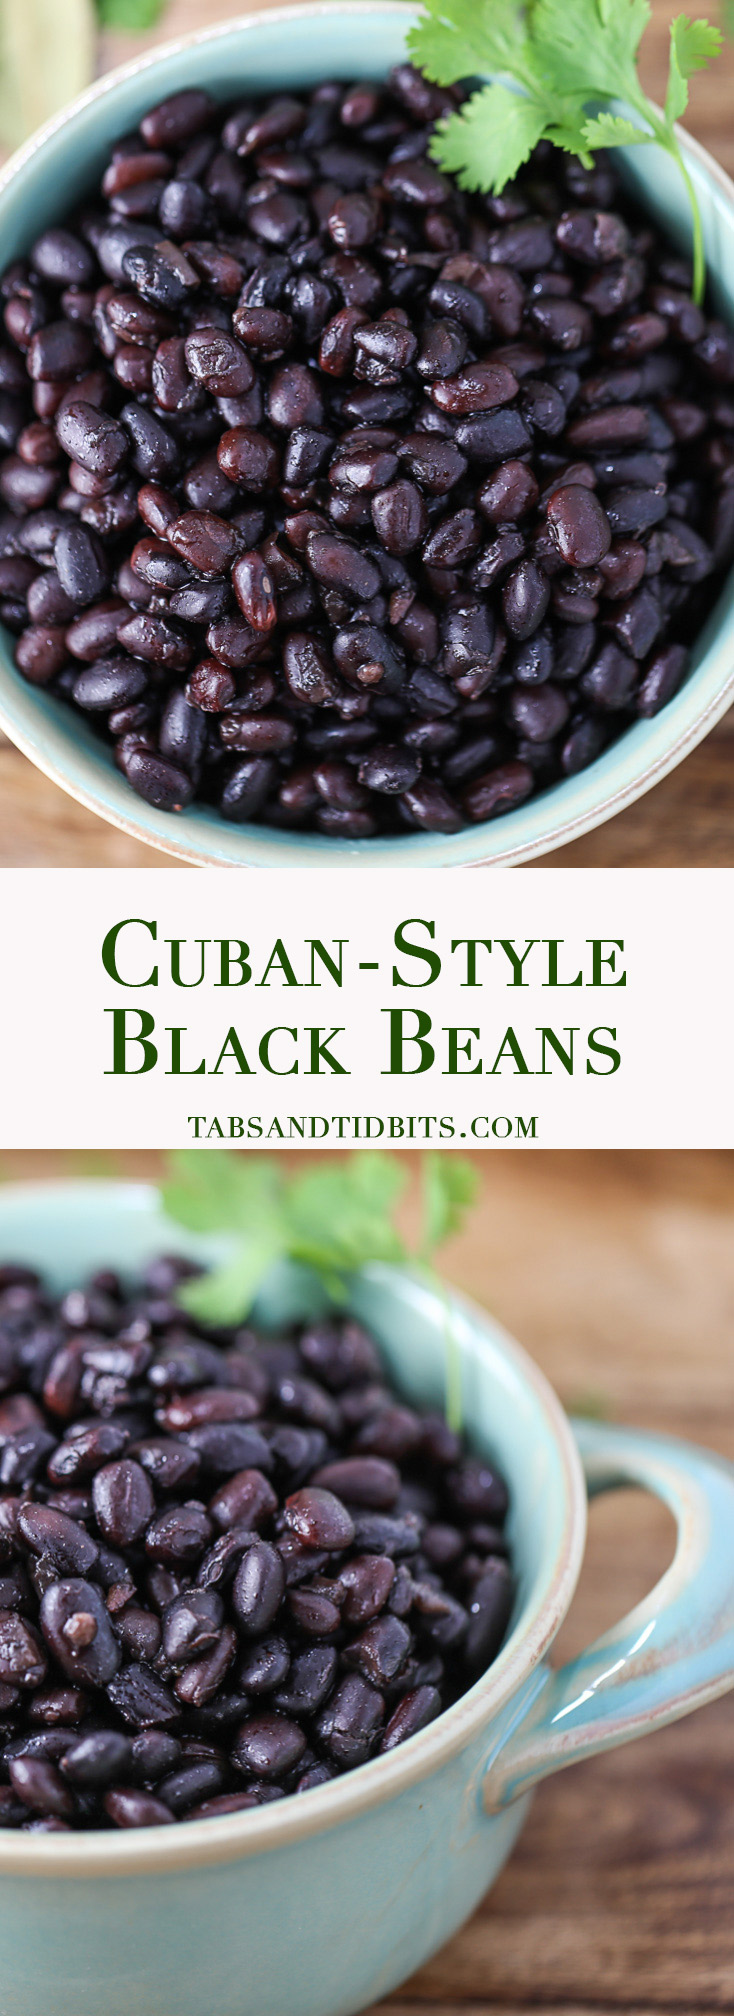 Cuban-Style Black Beans - Black beans infused with smoky cumin, oregano, onion, and just a hint of cilantro!